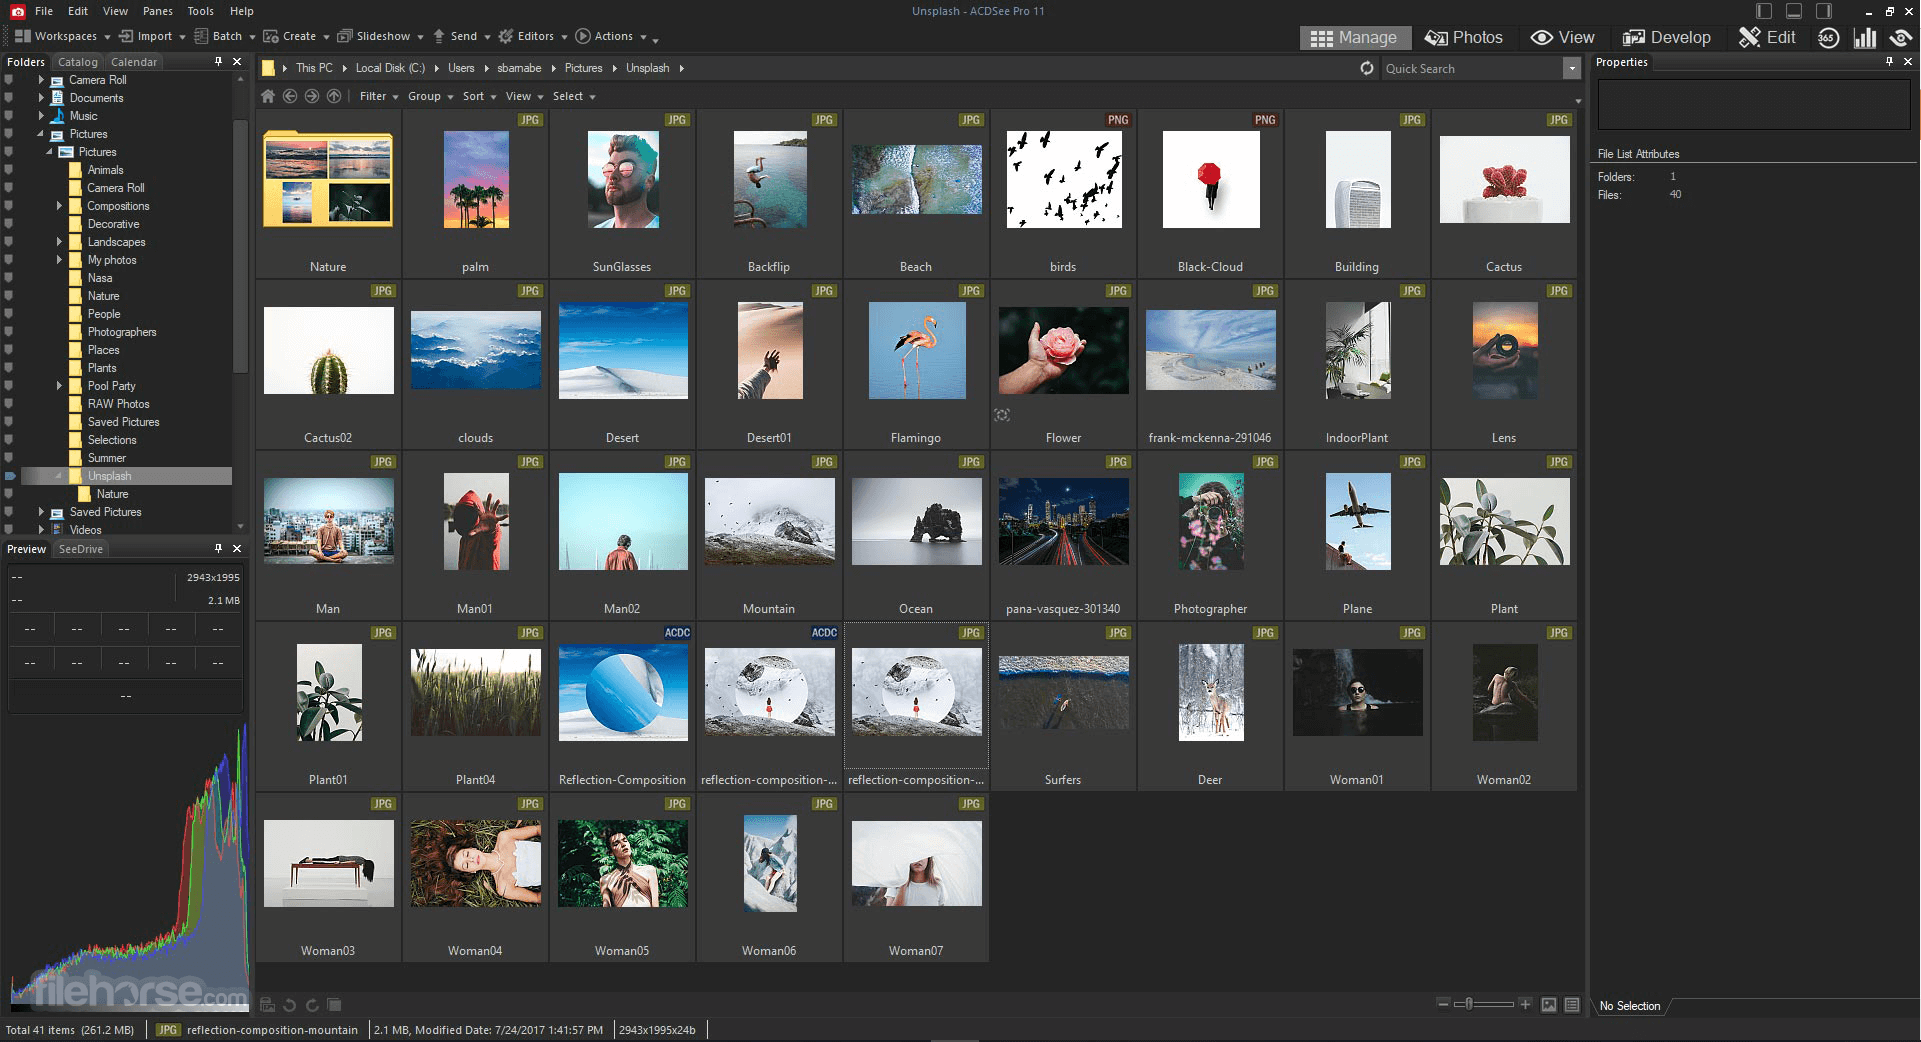 ACDSee Photo Studio Professional 2020 13.0.2 Build 1417 (64-bit) Screenshot 4